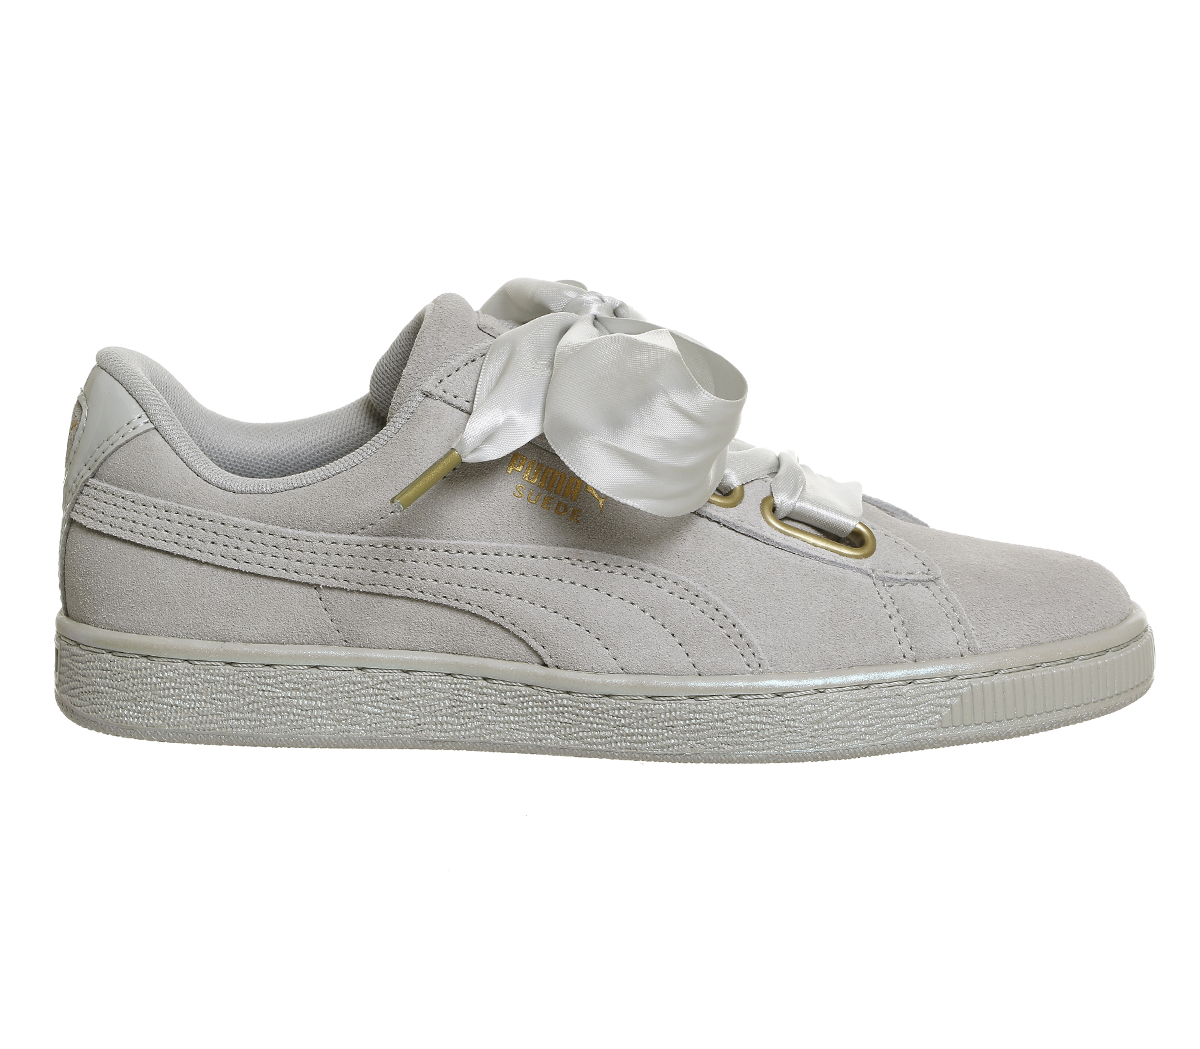 buy online 6fb9f d78a6 Details about Womens Puma Suede Heart Grey Violet Satin Trainers Shoes